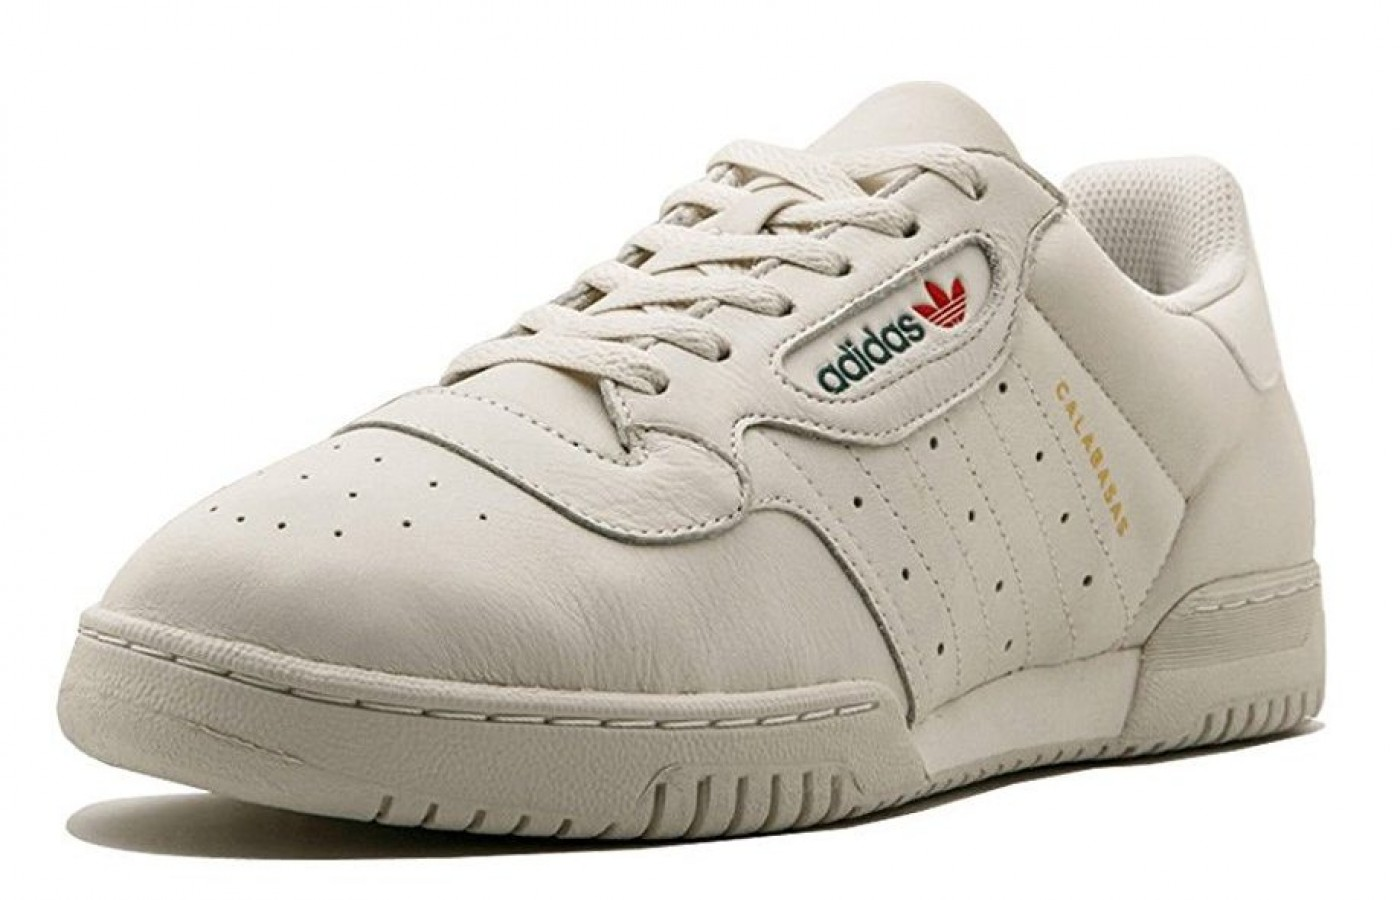 a1aee6a53 Adidas Yeezy Powerphase Reviewed   Tested in 2019